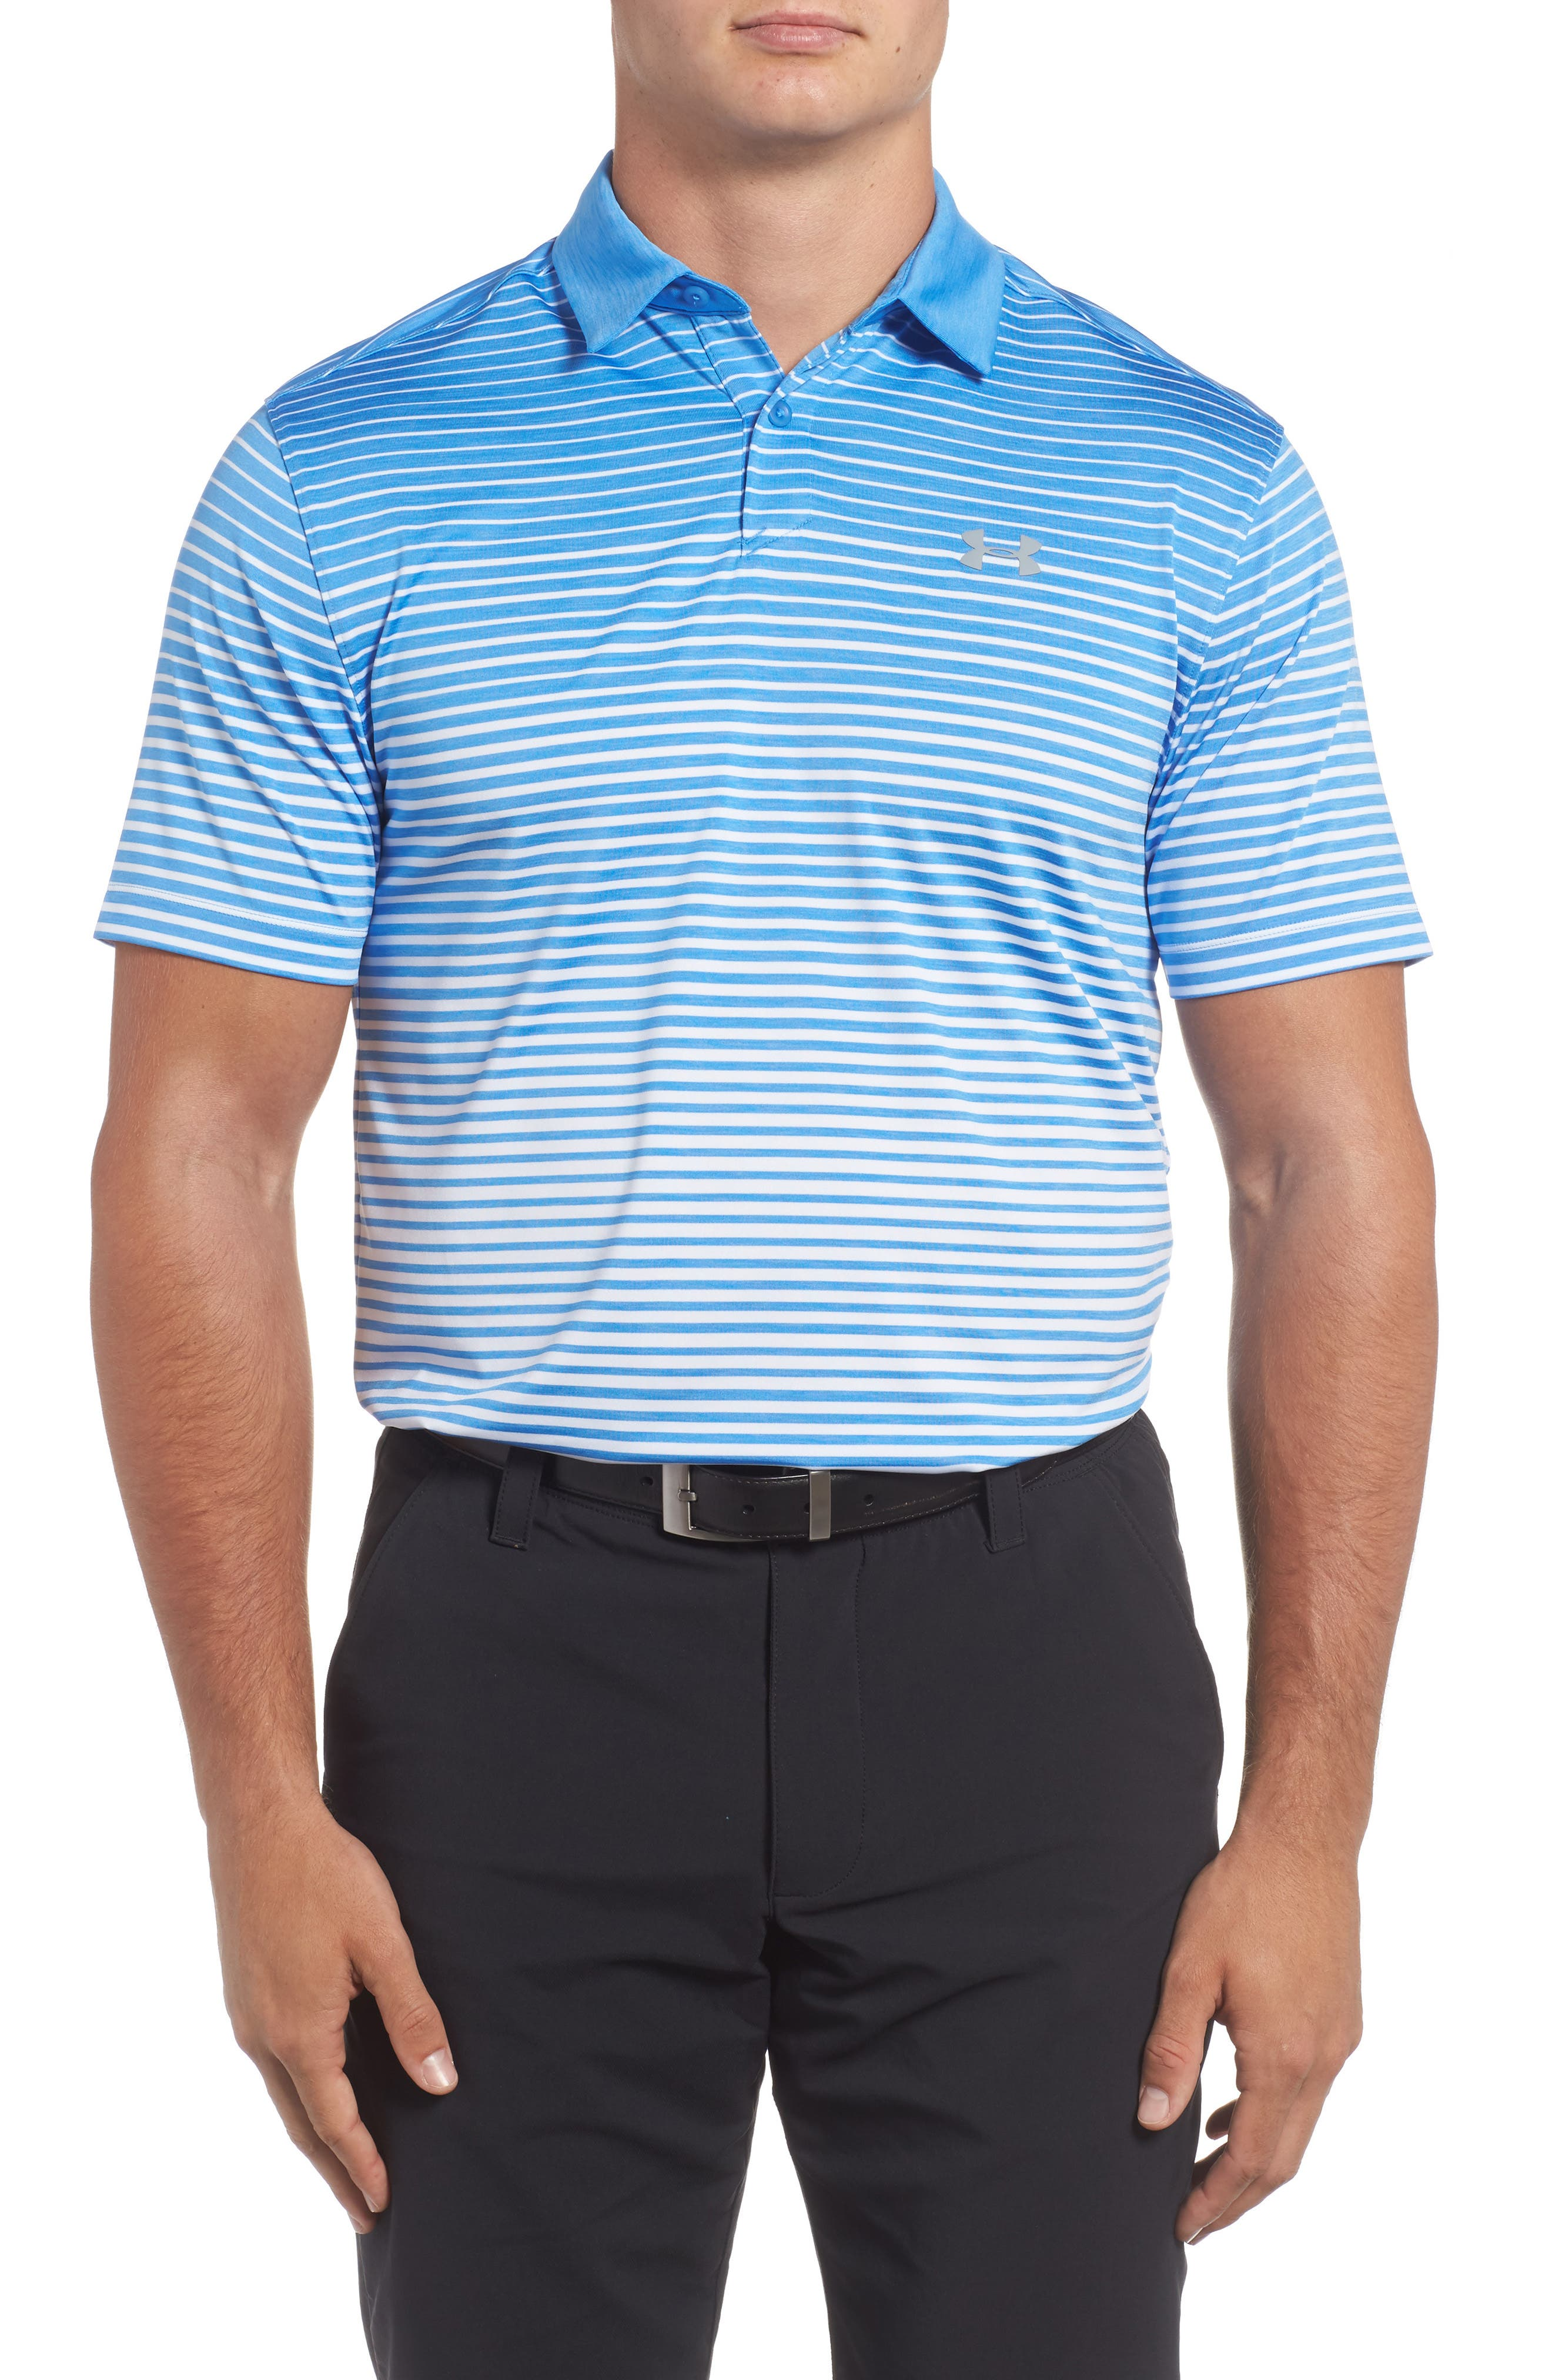 Under Armour Trajectory CoolSwitch Golf Polo